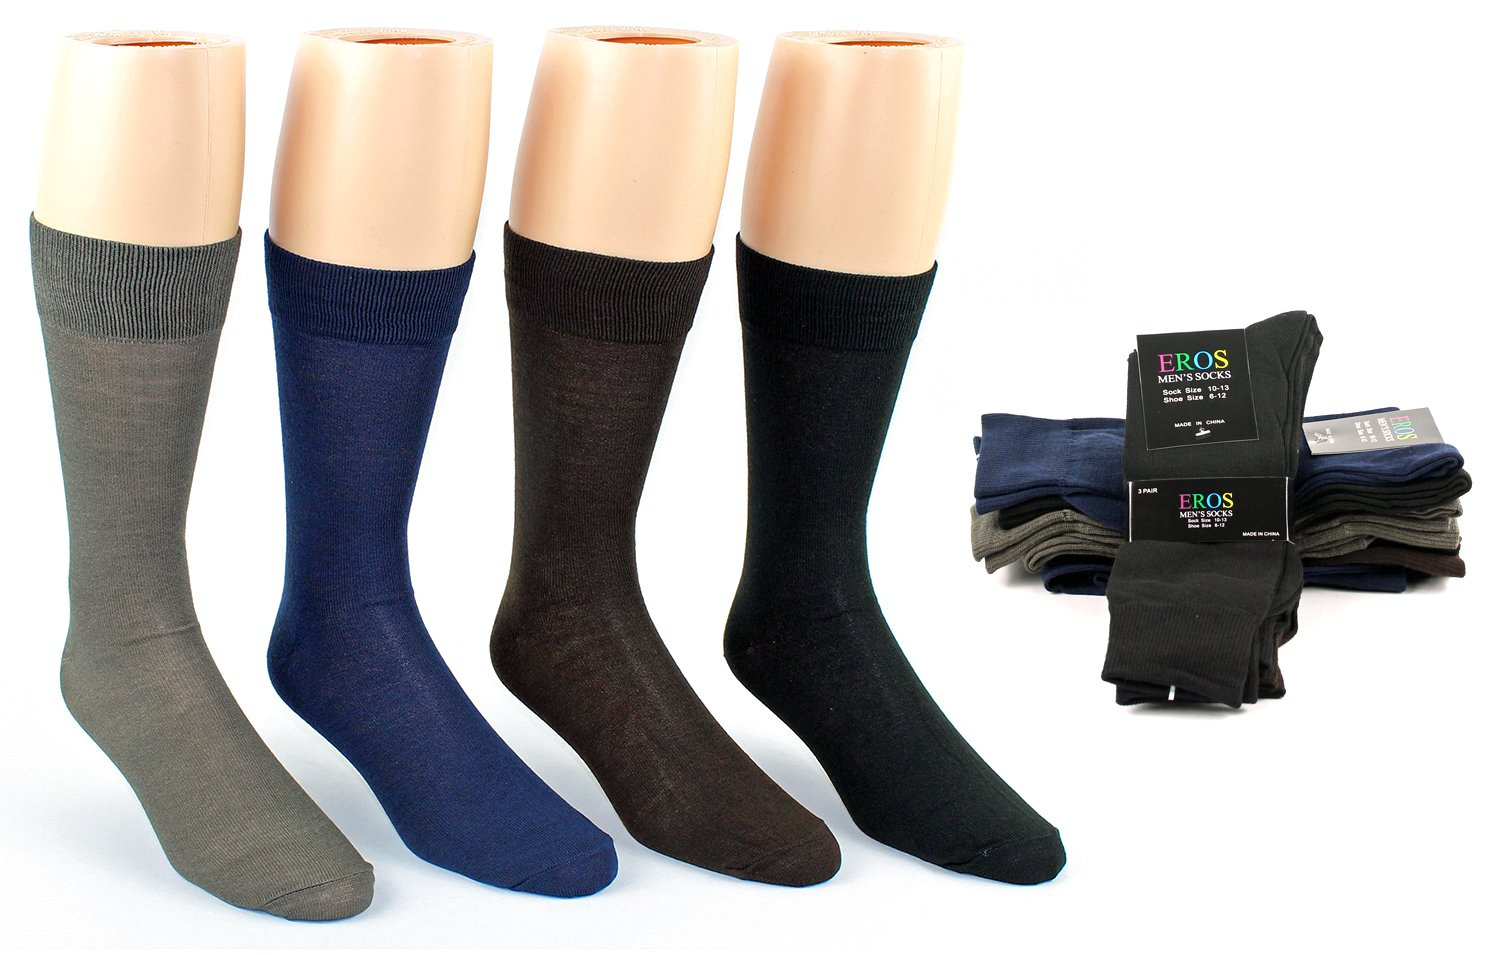 Men's Classic Crew DRESS Socks - Assorted Colors - Size 10-13